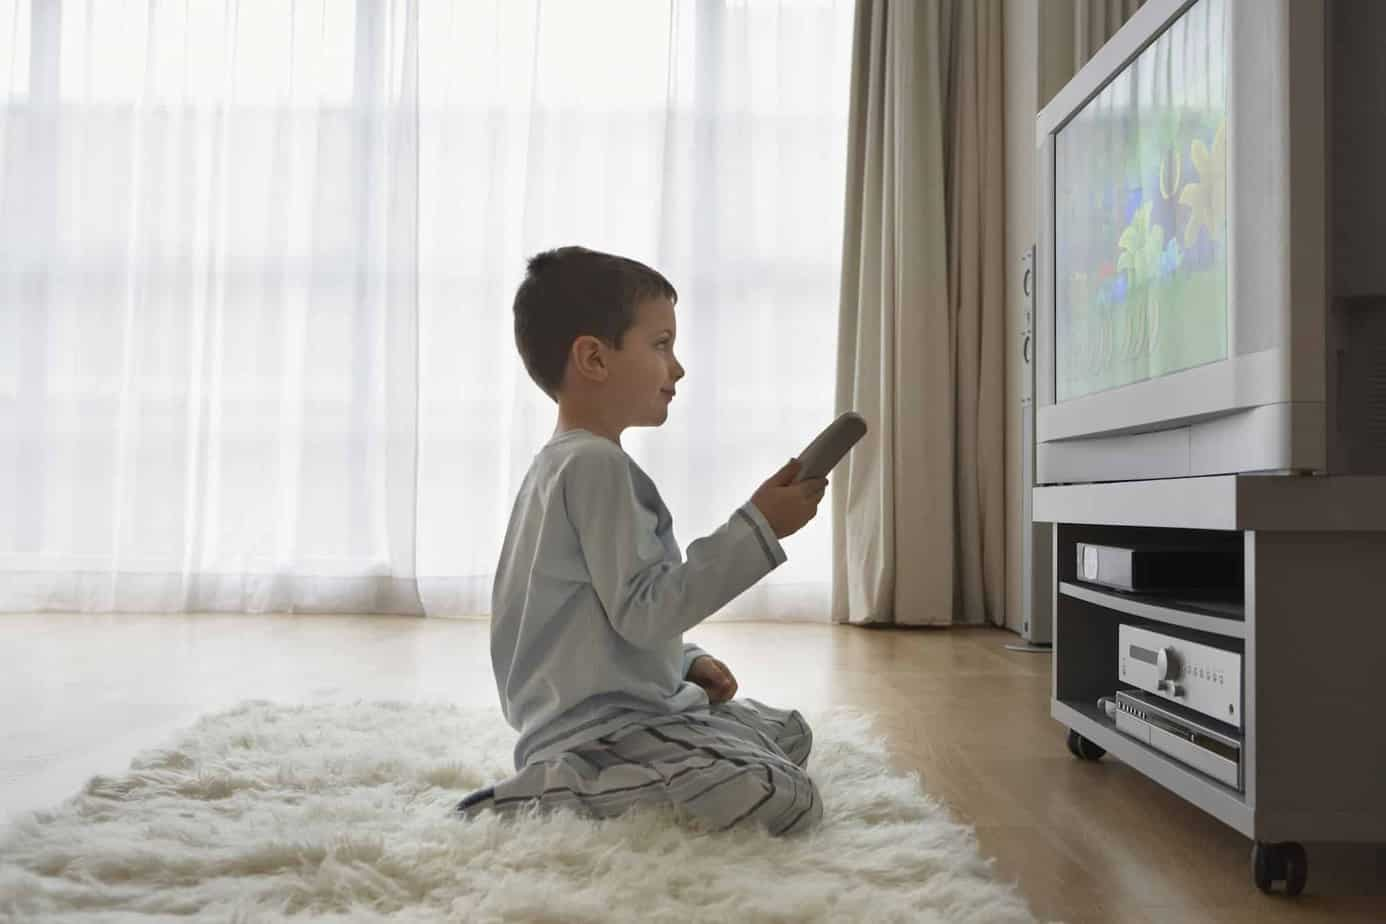 The benefits to liming screen time with kids but how to do this without tears, tantrums or a fit when it's time to hit the off button. Why limited screen time is so important and how to set limits you can enforce.